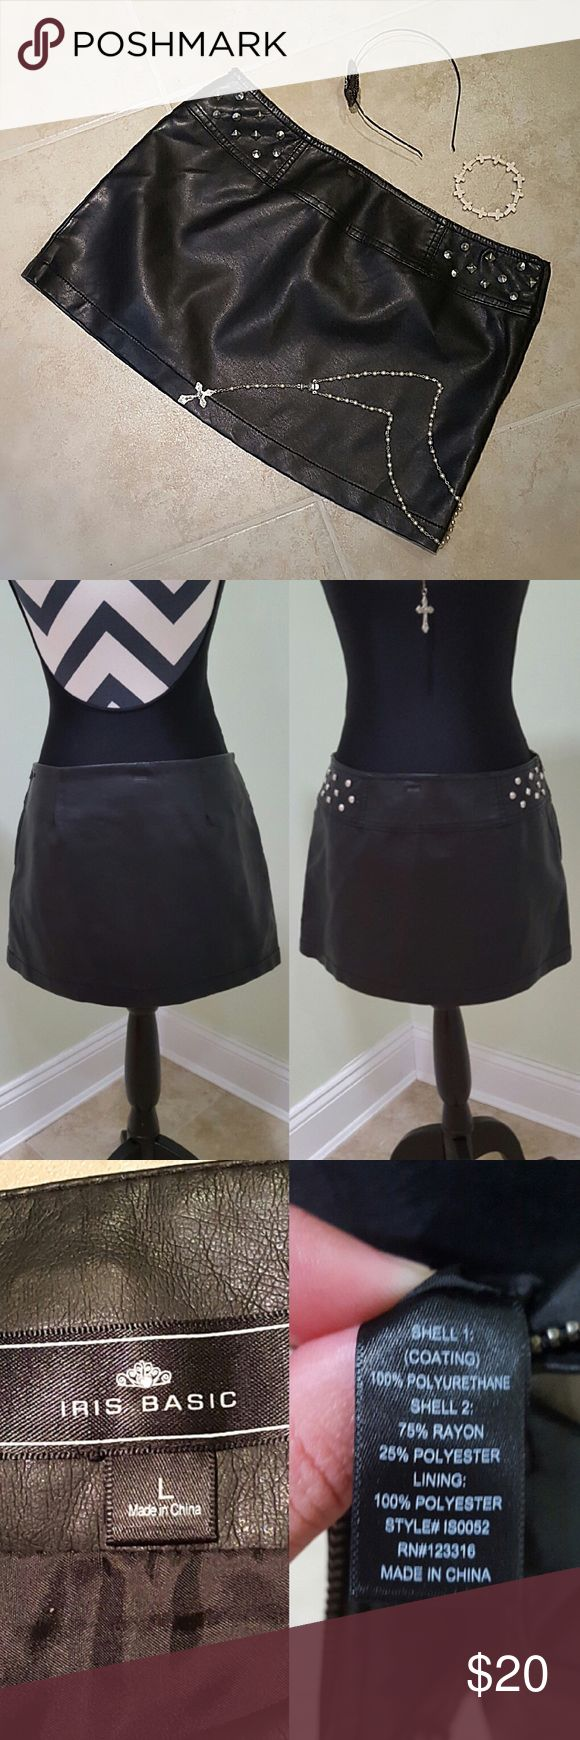 Faux Leather Skirt You could be out for a night with the girls or on the back of a motorcycle, this is a great statement to add to your wardrobe! Faux Leather with silver studs on both hips. Side zipper! Only flaws are minor pealing in a couple spots (pictured) next to my pinky. The peeling is from where the clamp from the hanger was at the top of the band. Price reflects flaws! iris basic Skirts Mini